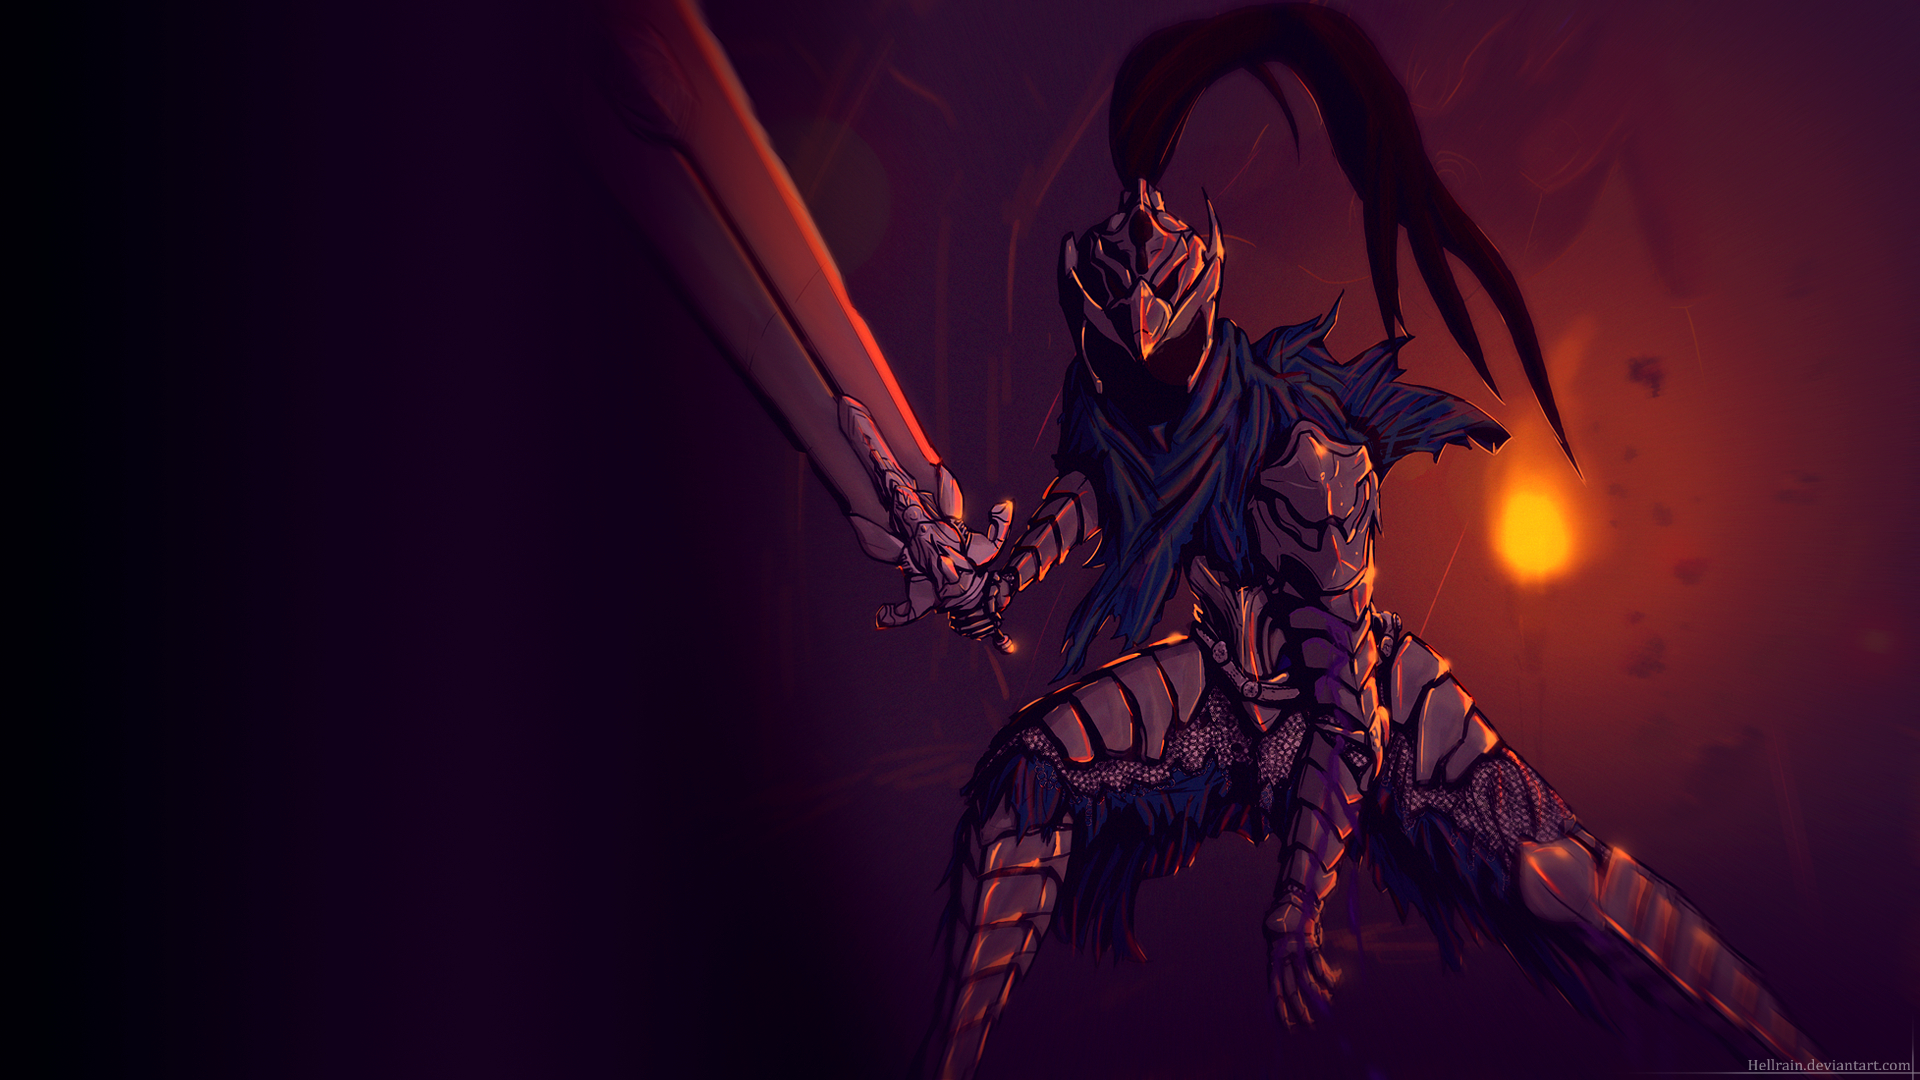 Wallpaper   Artorias of the Abyss 1920x1080 by Hellrain on 1920x1080